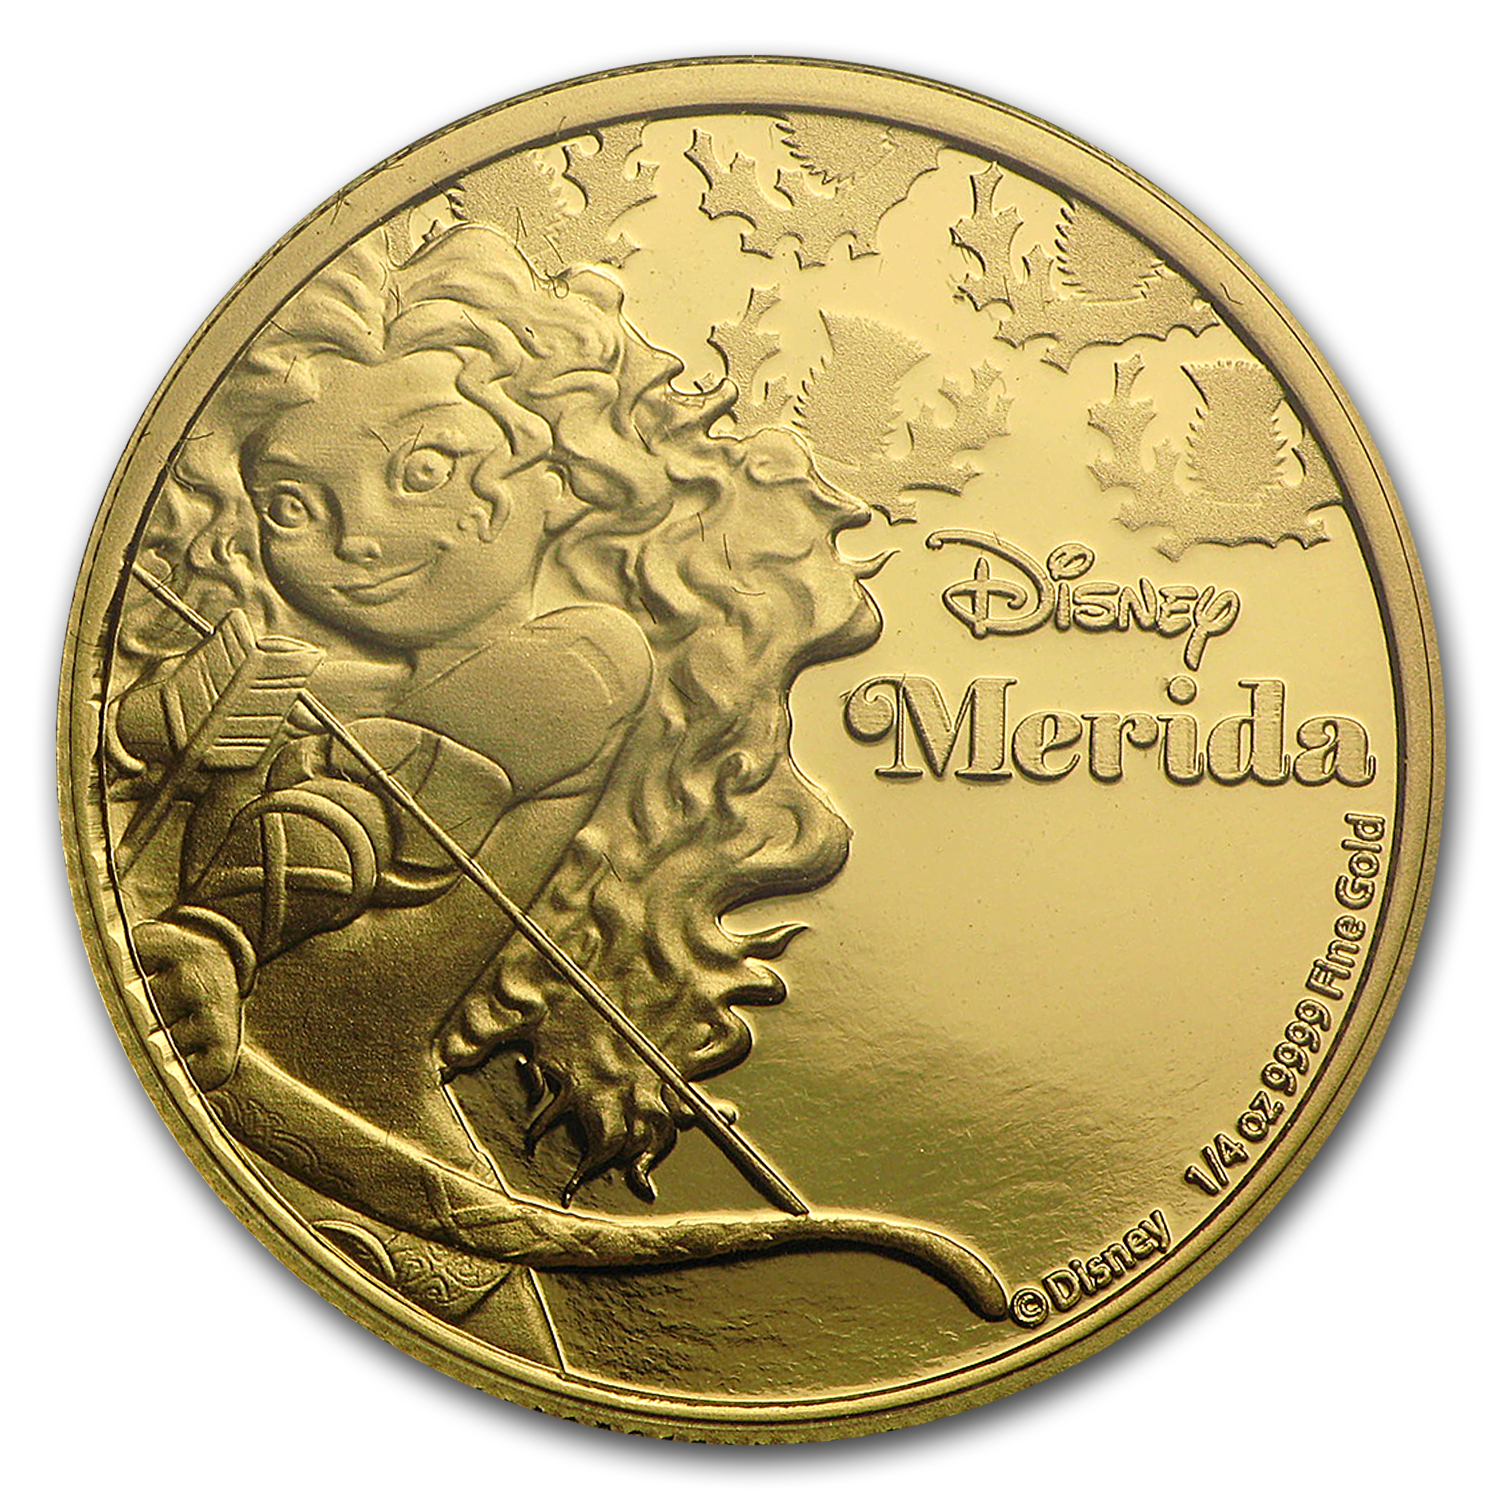 2016 Niue 1/4 oz Proof Gold $25 Disney Princess Merida